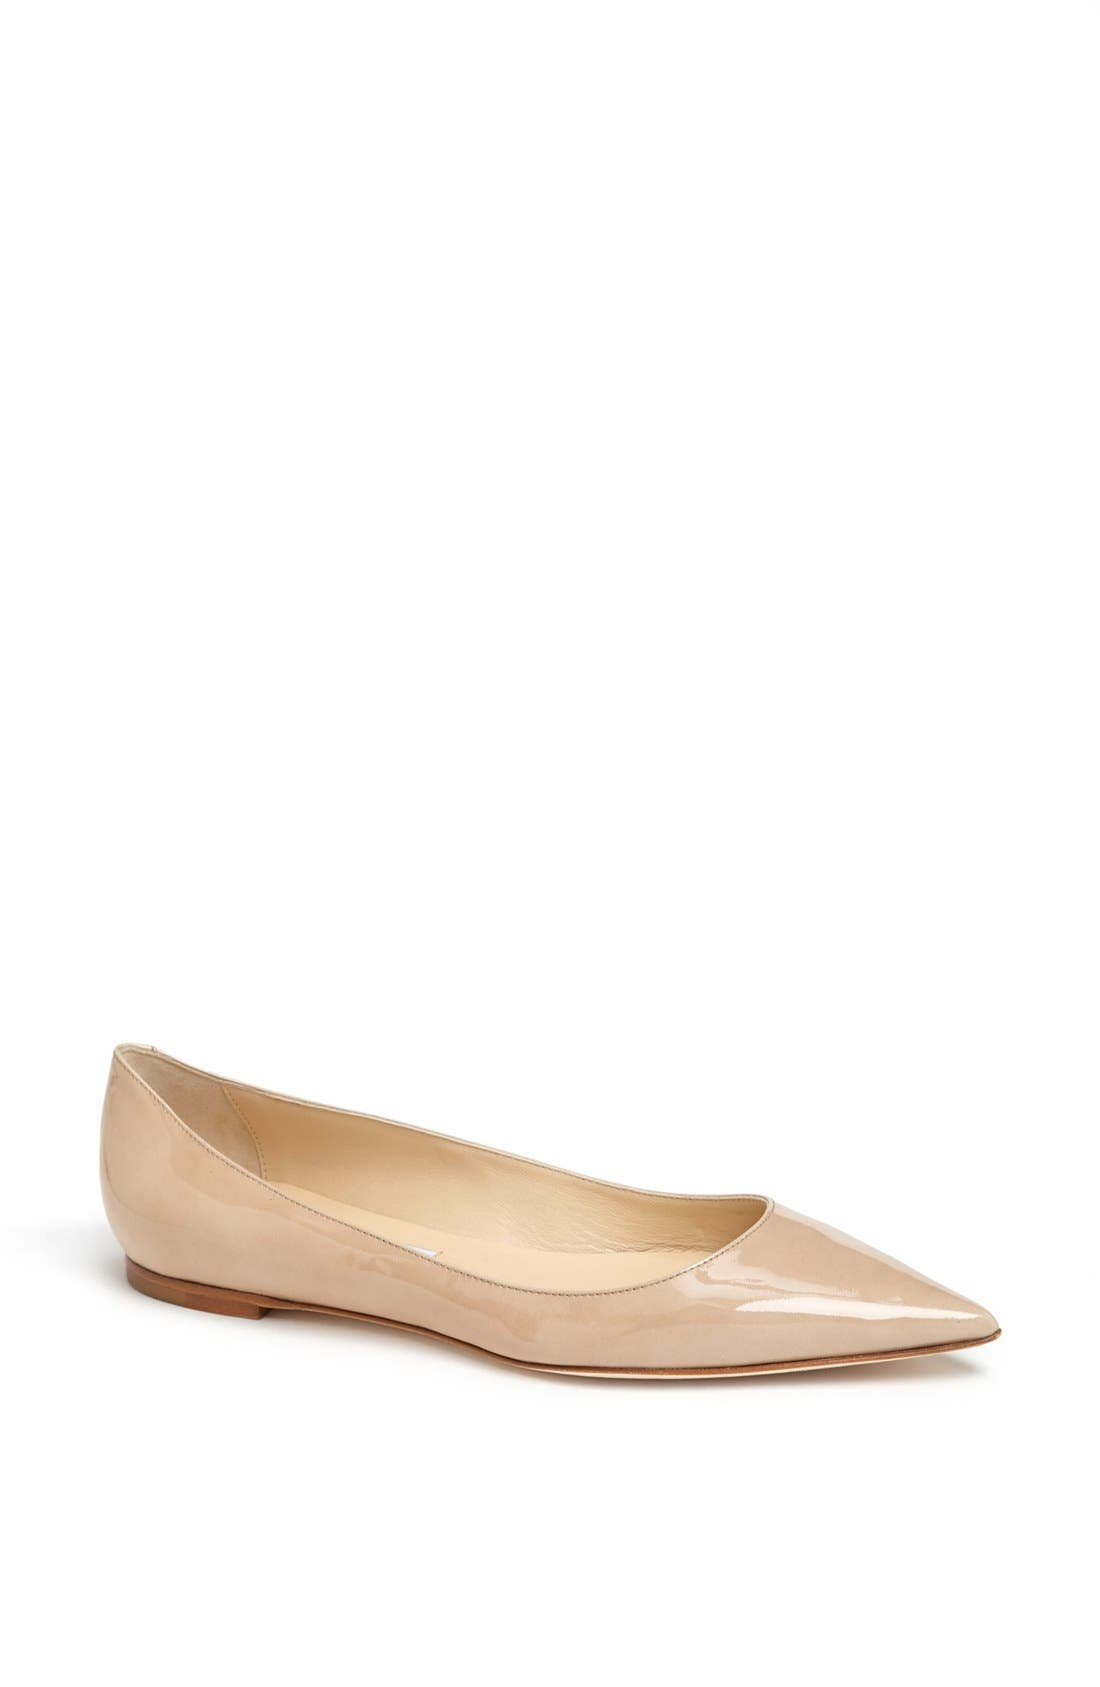 Alternate Image 1 Selected - Jimmy Choo 'Alina' Pointy Toe Flat (Women)